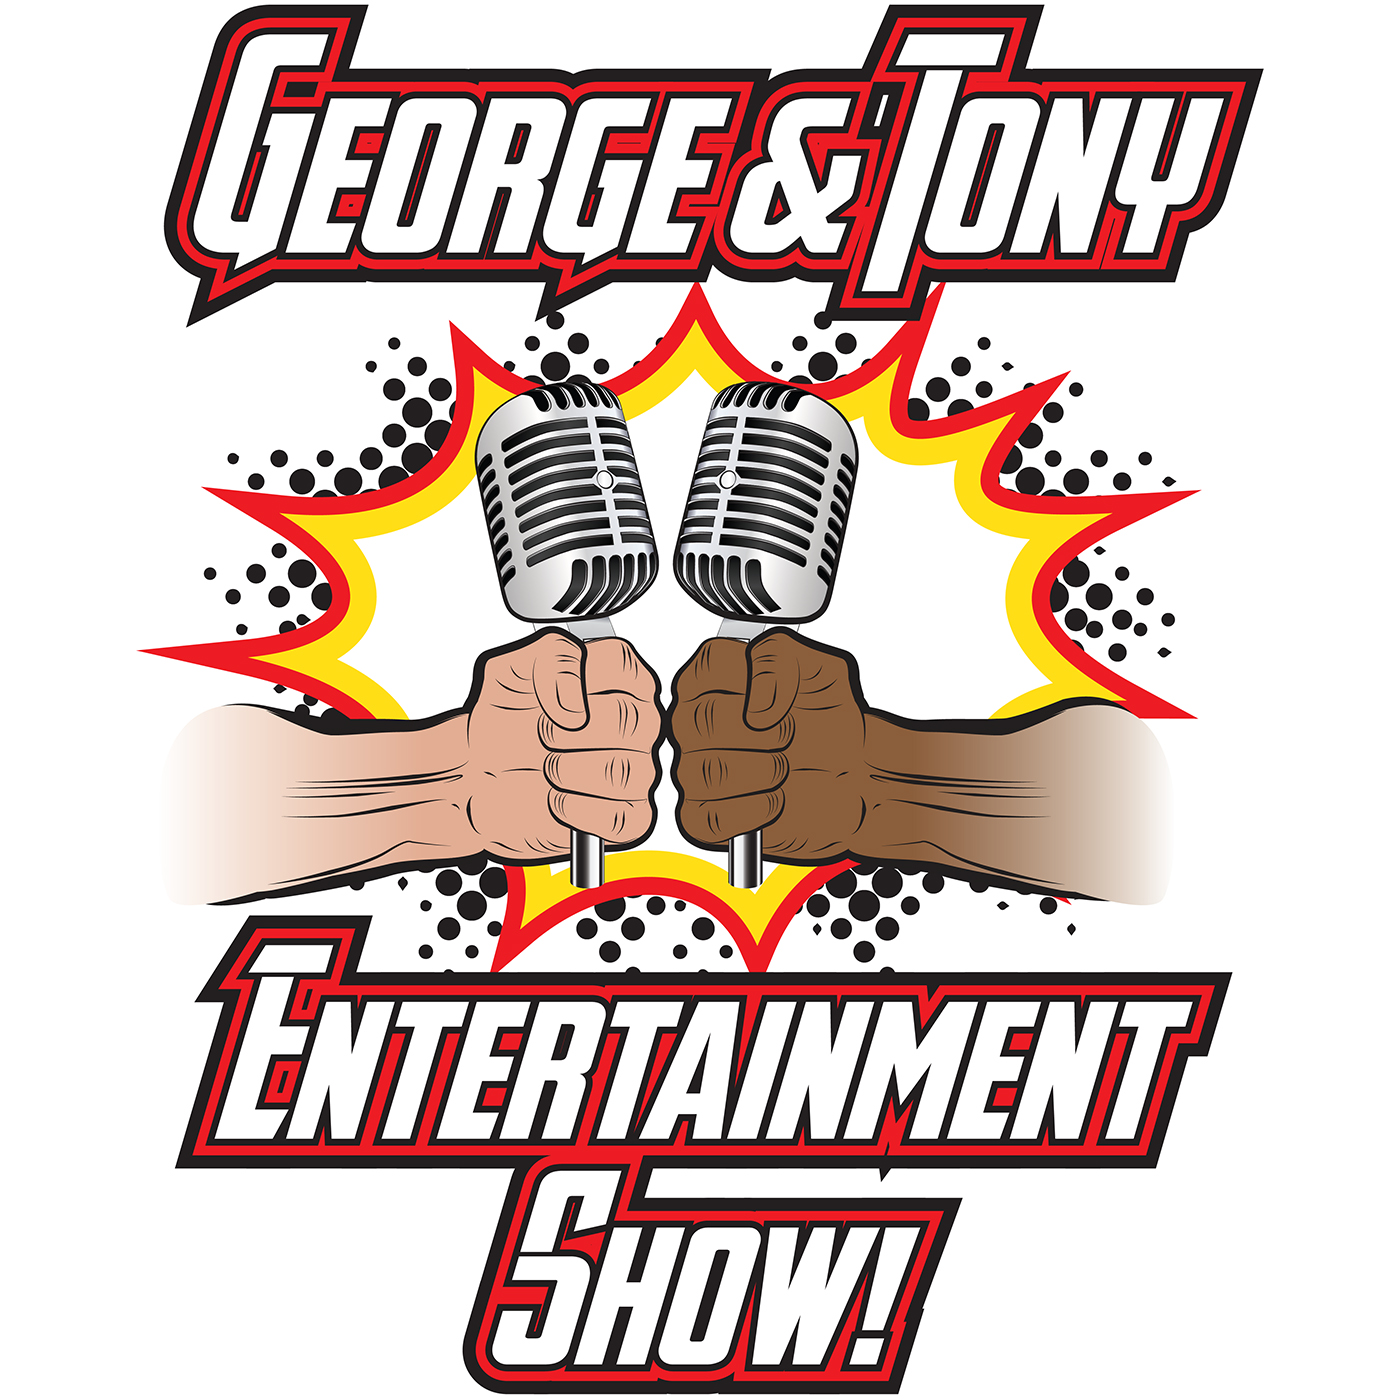 George and Tony Entertainment Show #15